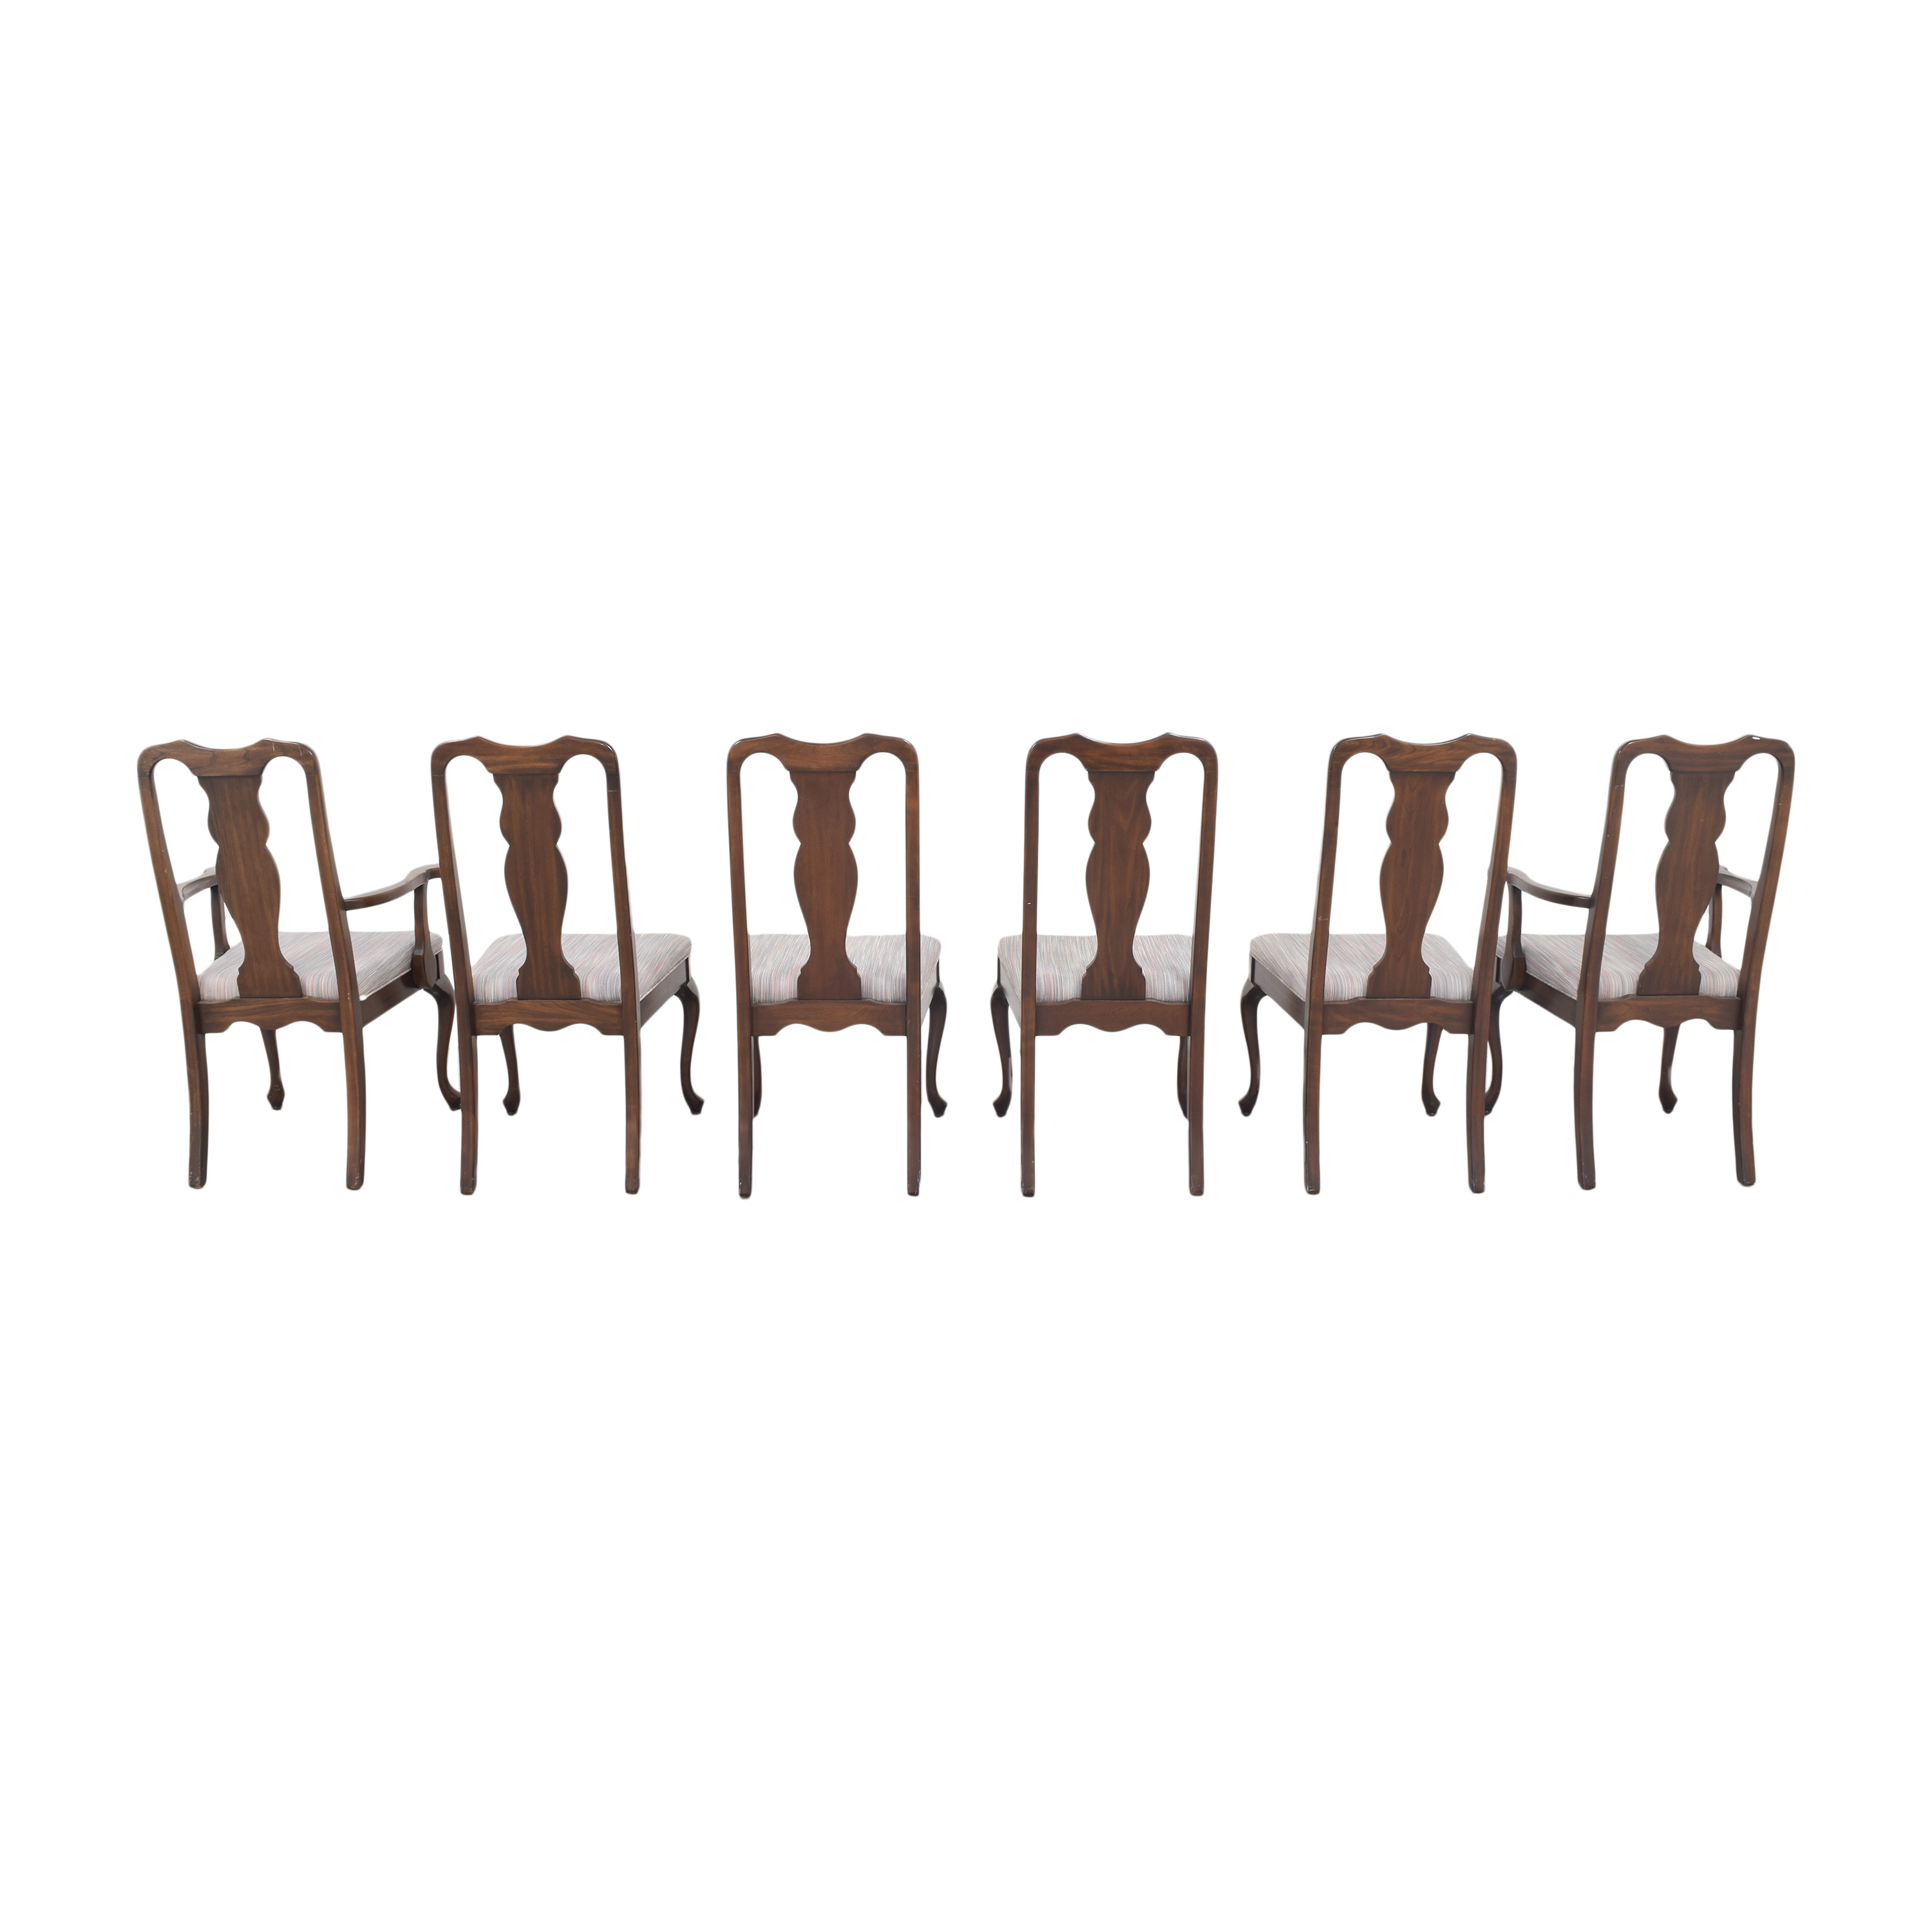 Harden Harden Upholstered Dining Chairs pa